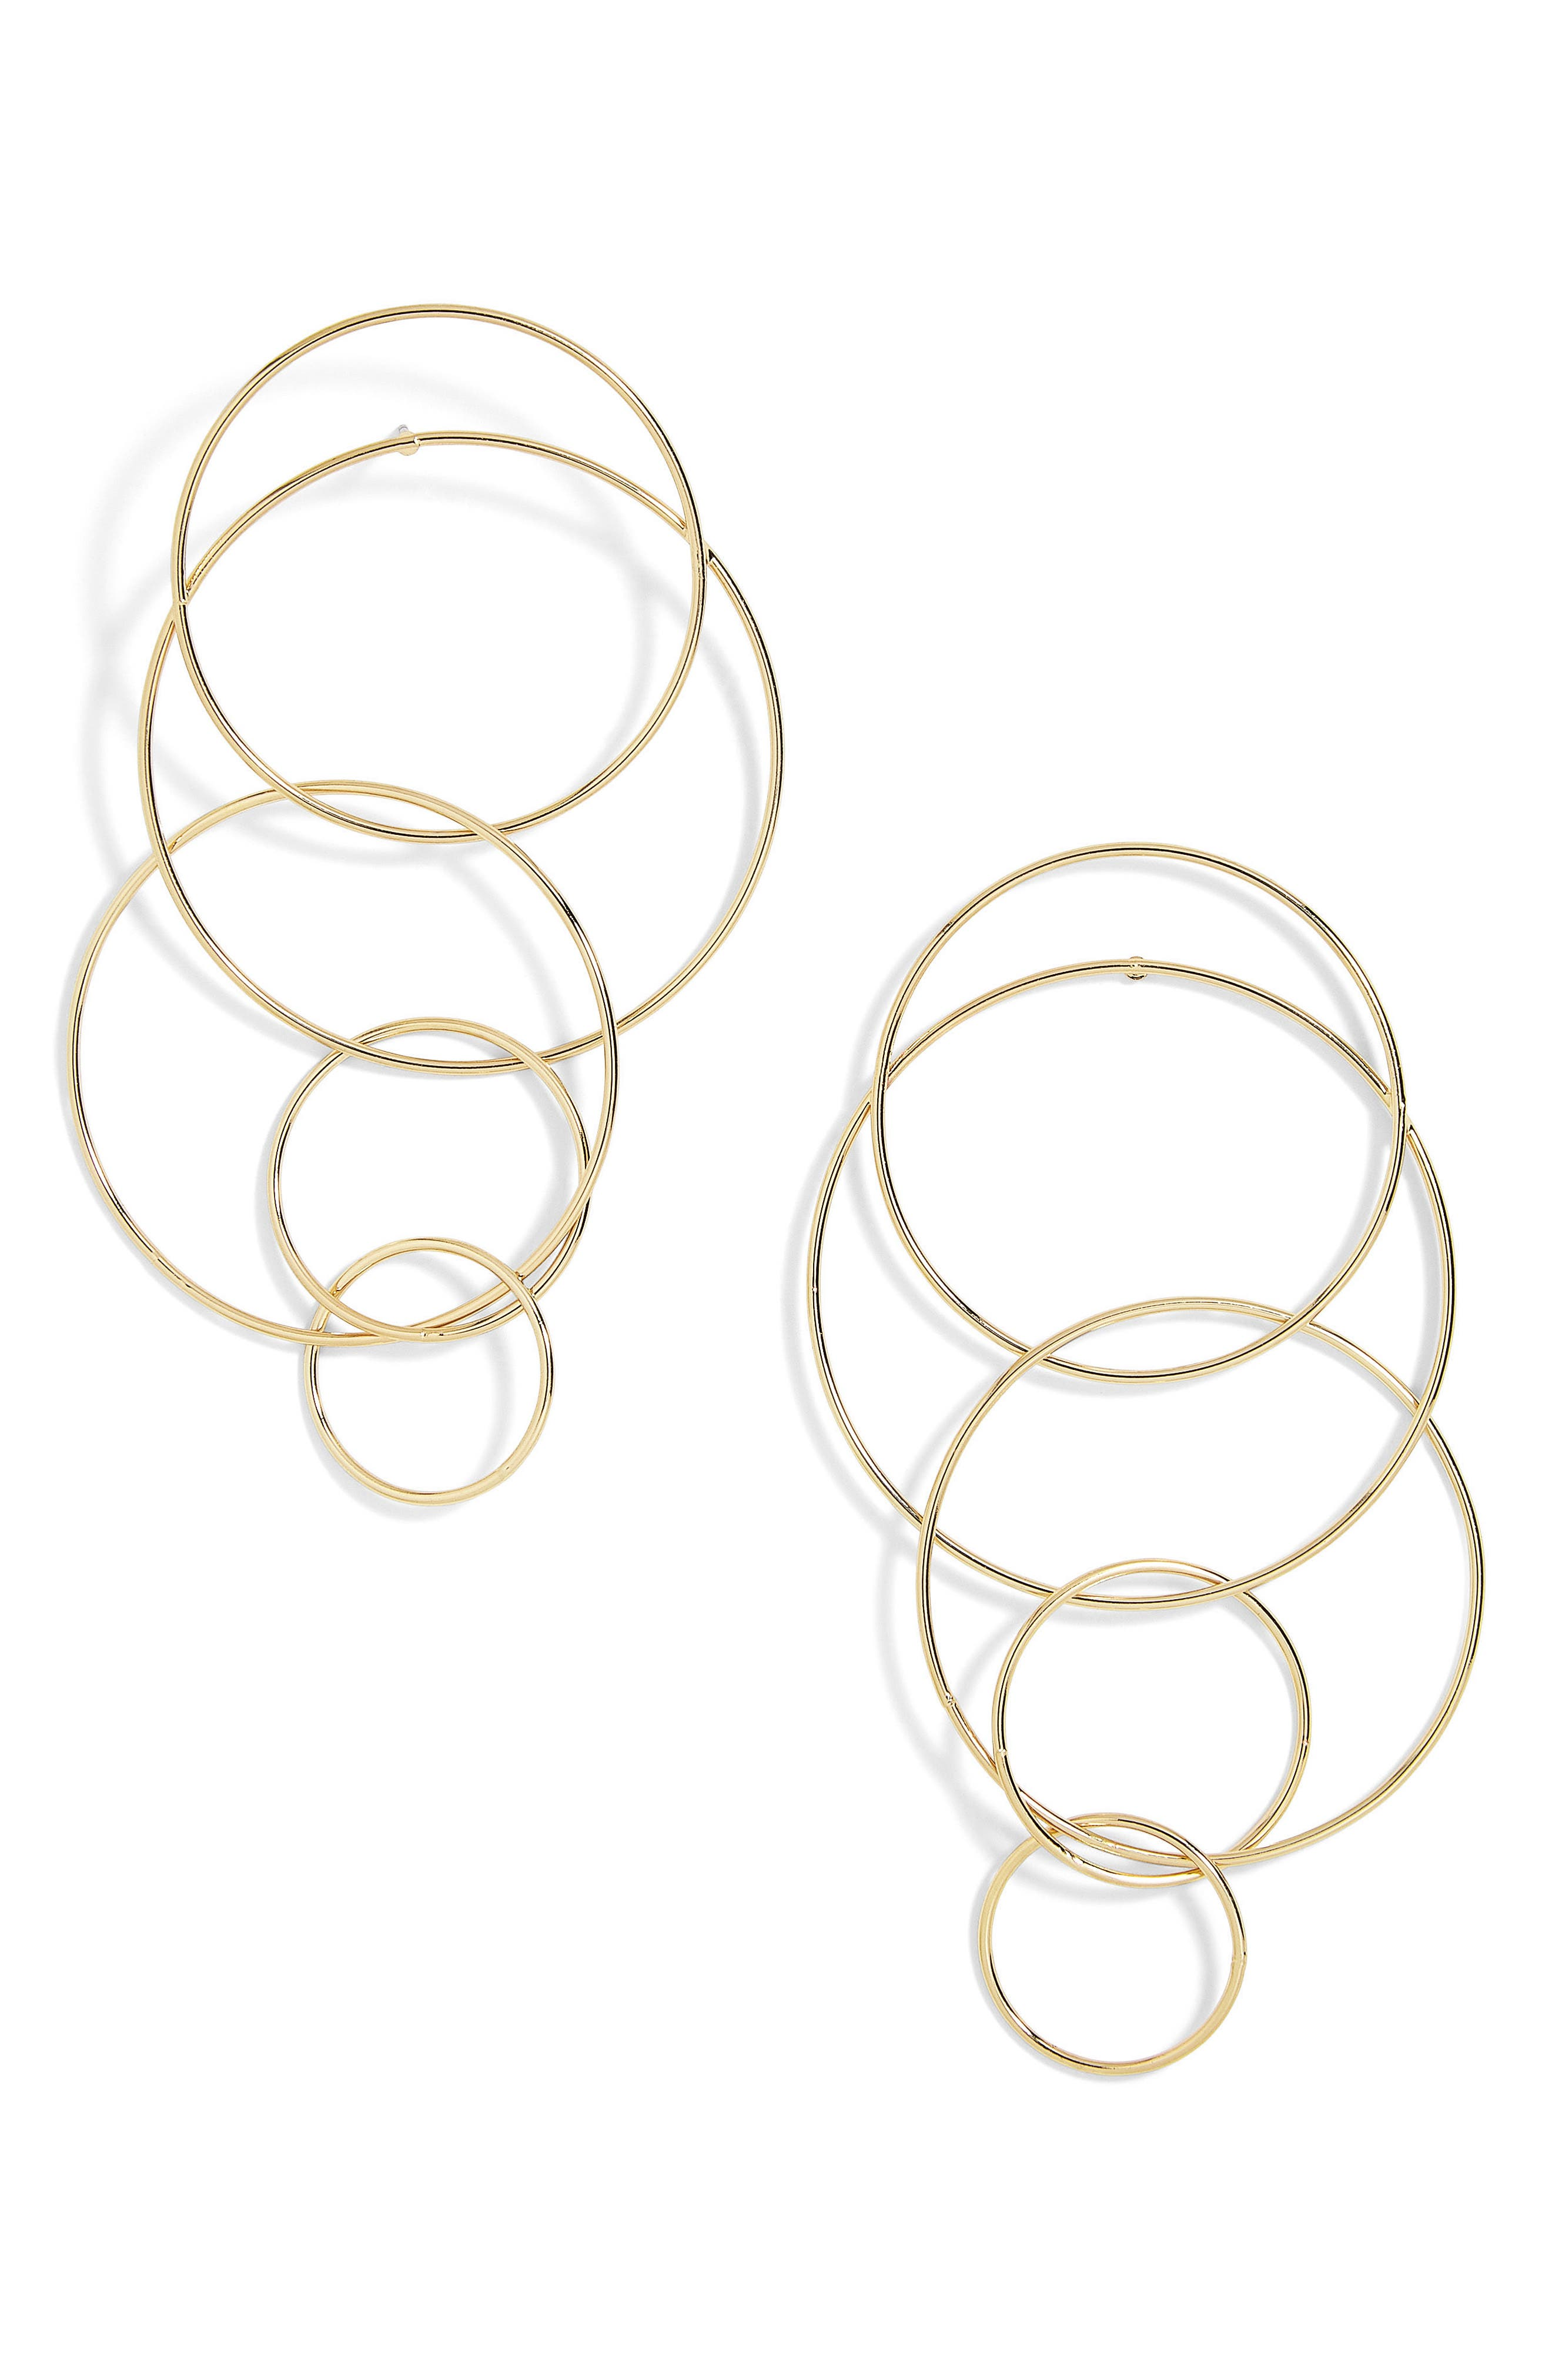 Mixed Size Layered Hoop Earrings,                         Main,                         color, Gold